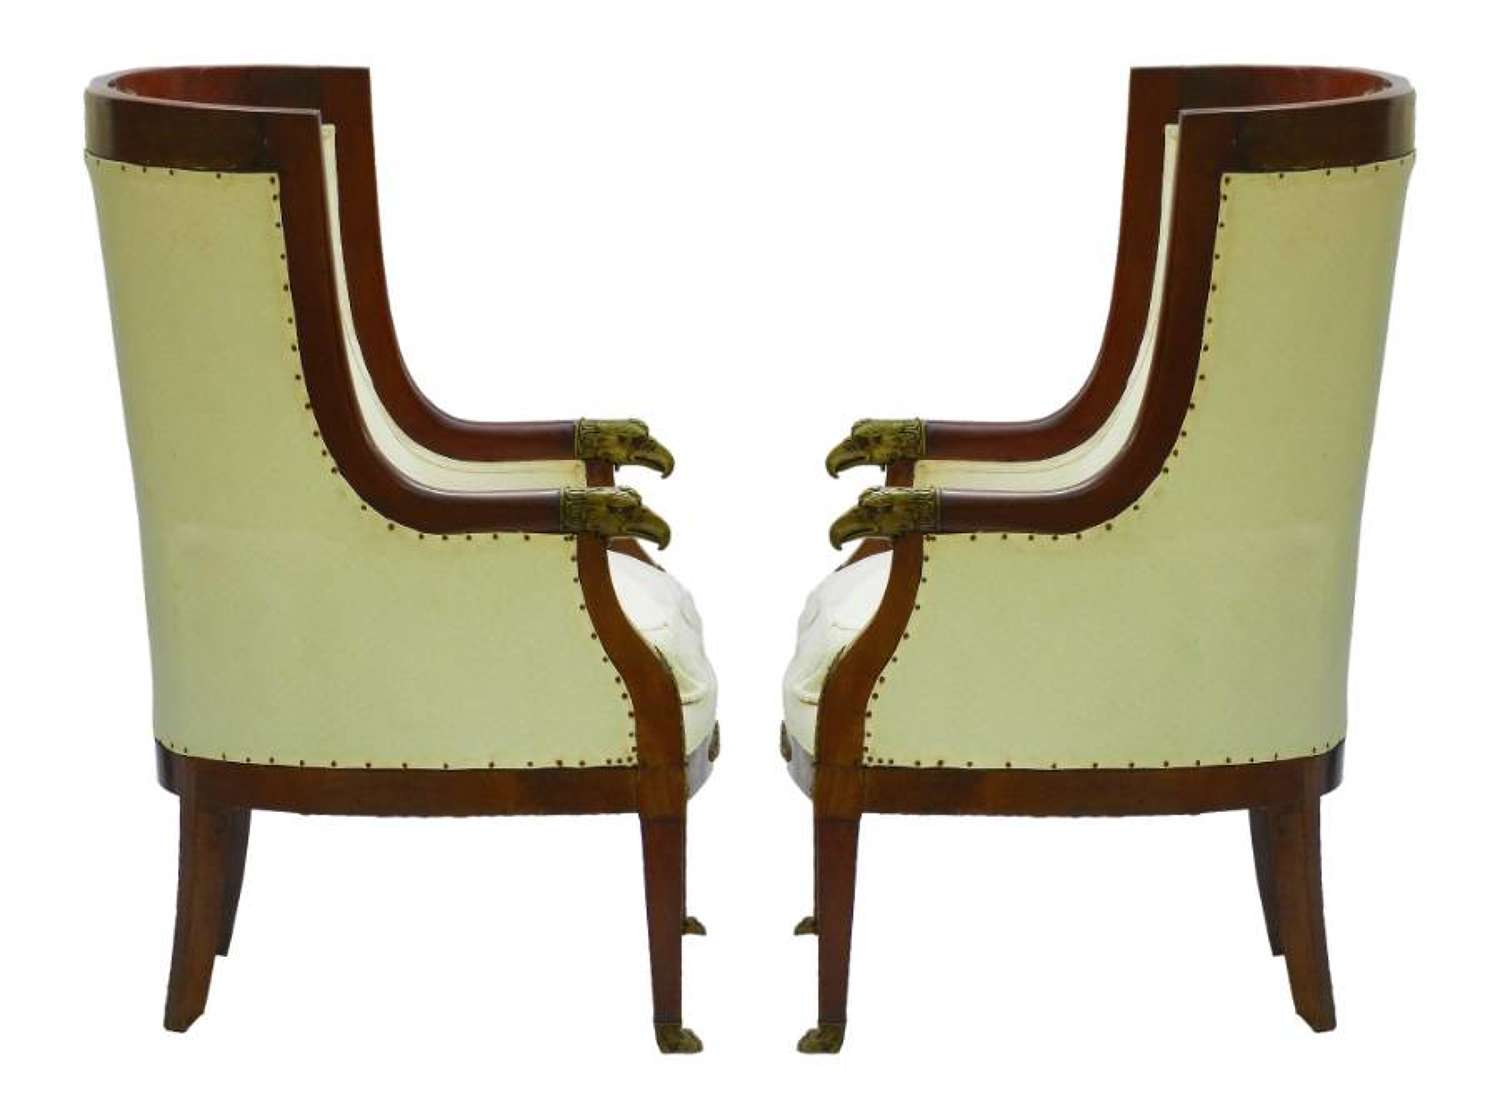 Pair Bergere Armchairs French Empire revival Barrel Chairs Eagle Head Paw Feet